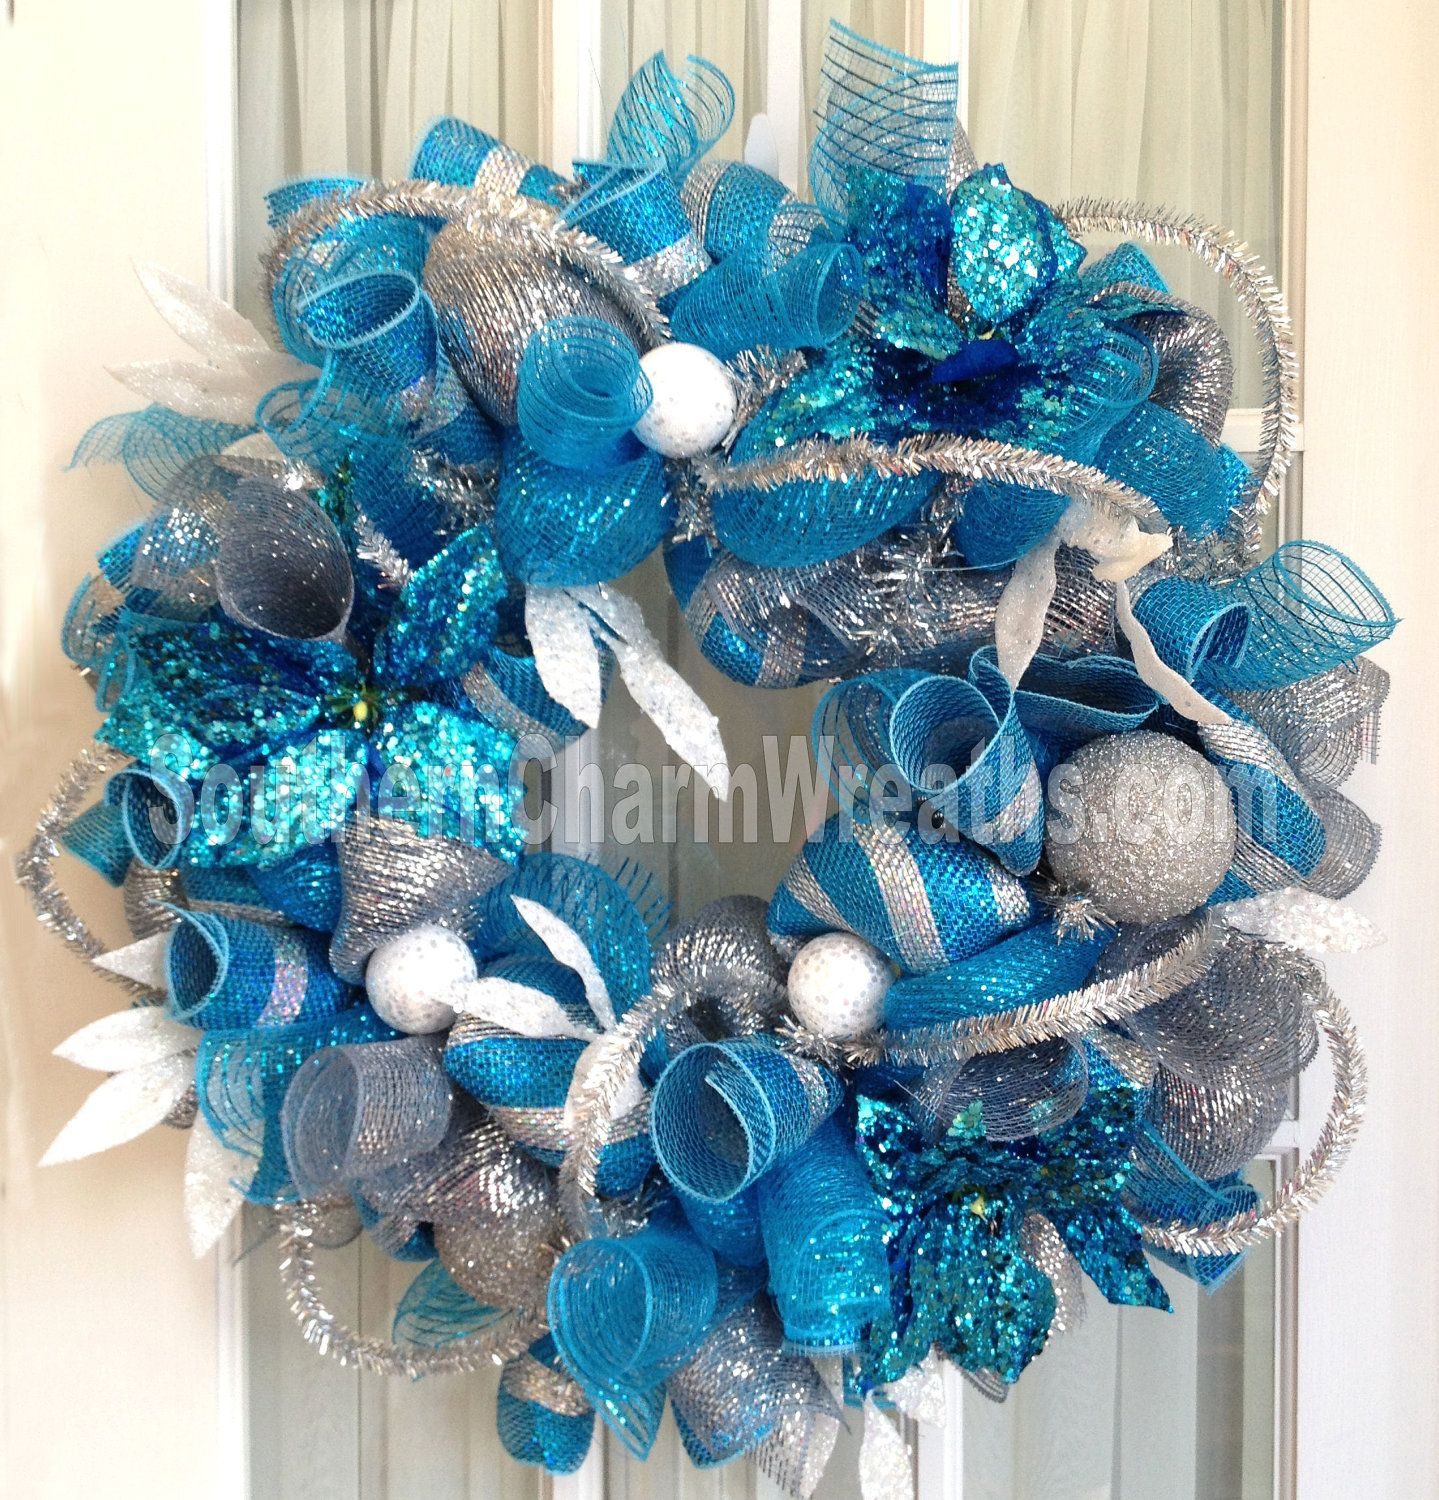 Deco Mesh BLUE CHRISTMAS Wreath For Door or Turquoise Silver White